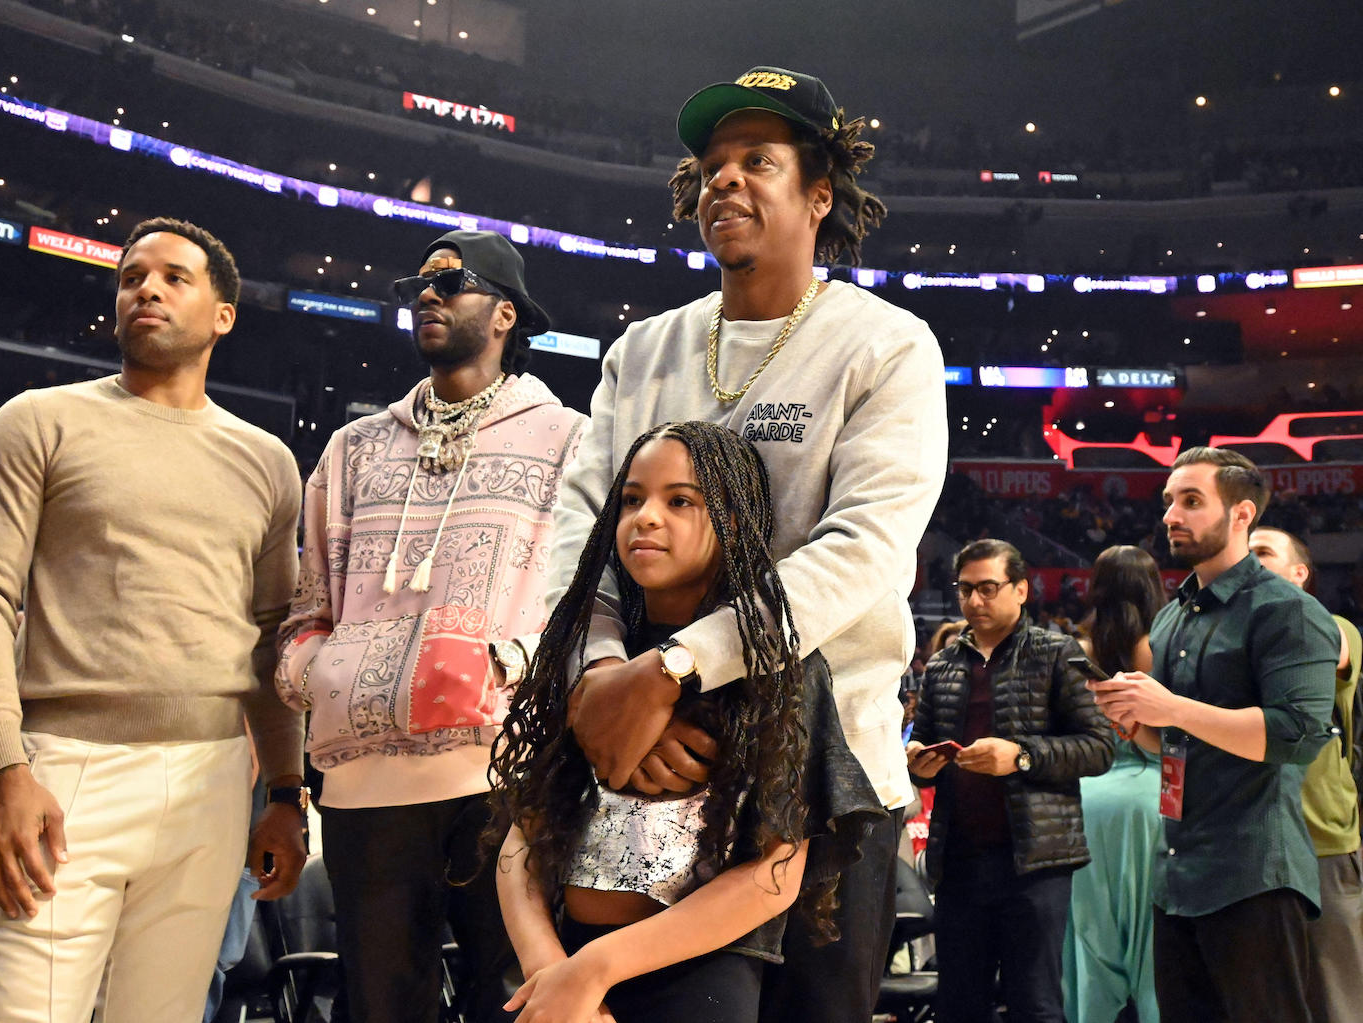 Blue Ivy Carter was too nervous to ask LeBron James for an autograph, and the video is adorable